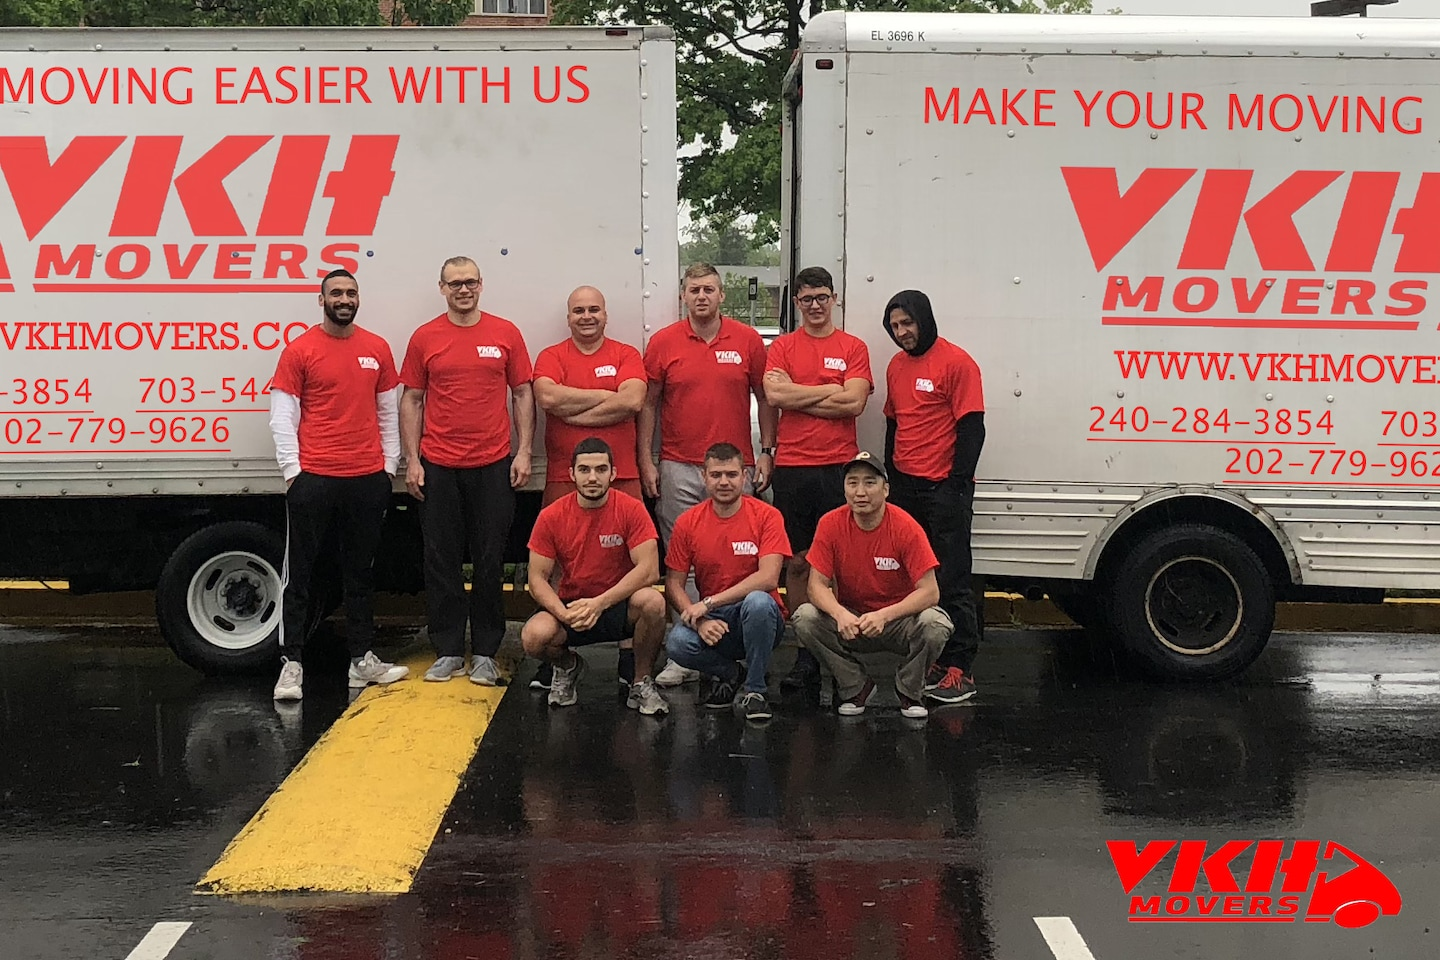 VKH Movers